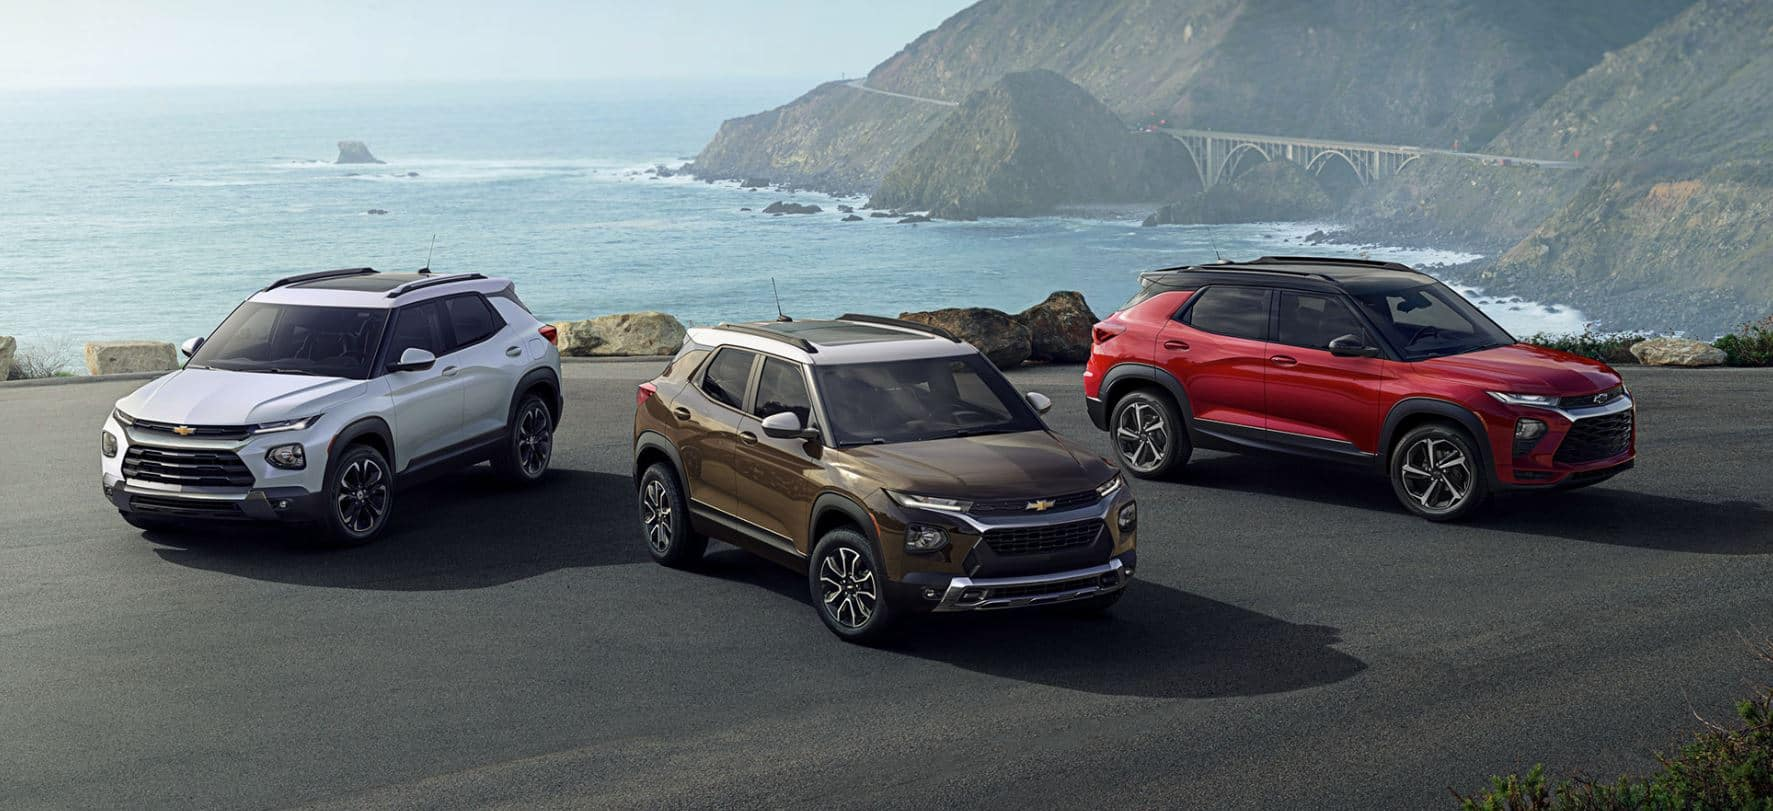 2021 Chevy Trailblazer lineup available now at Mike Anderson Chevrolet of Chicago